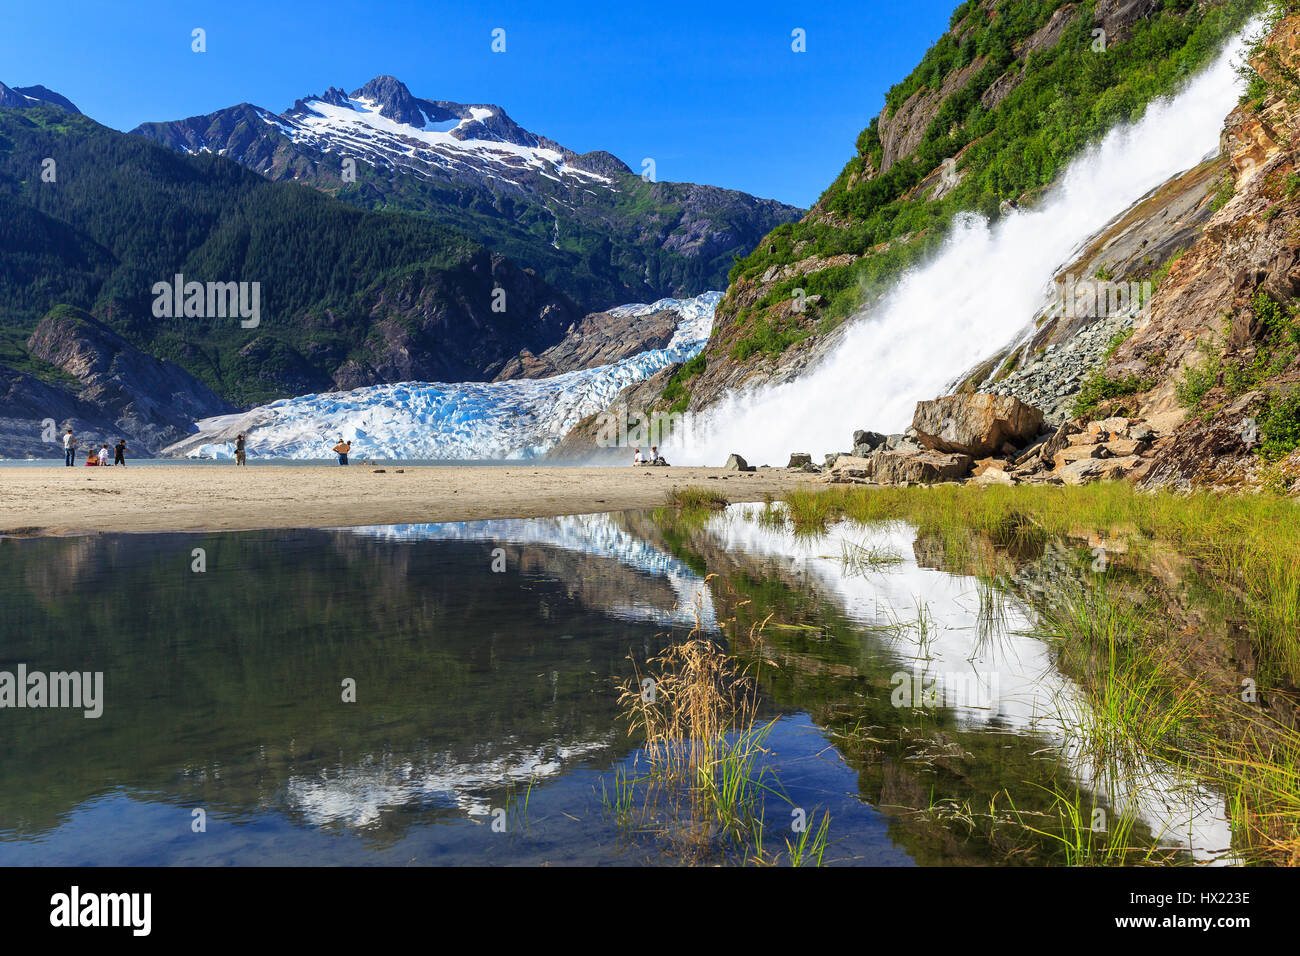 Juneau, Alaska. Mendenhall Glacier Viewpoint with reflection in the lake and waterfall. Stock Photo